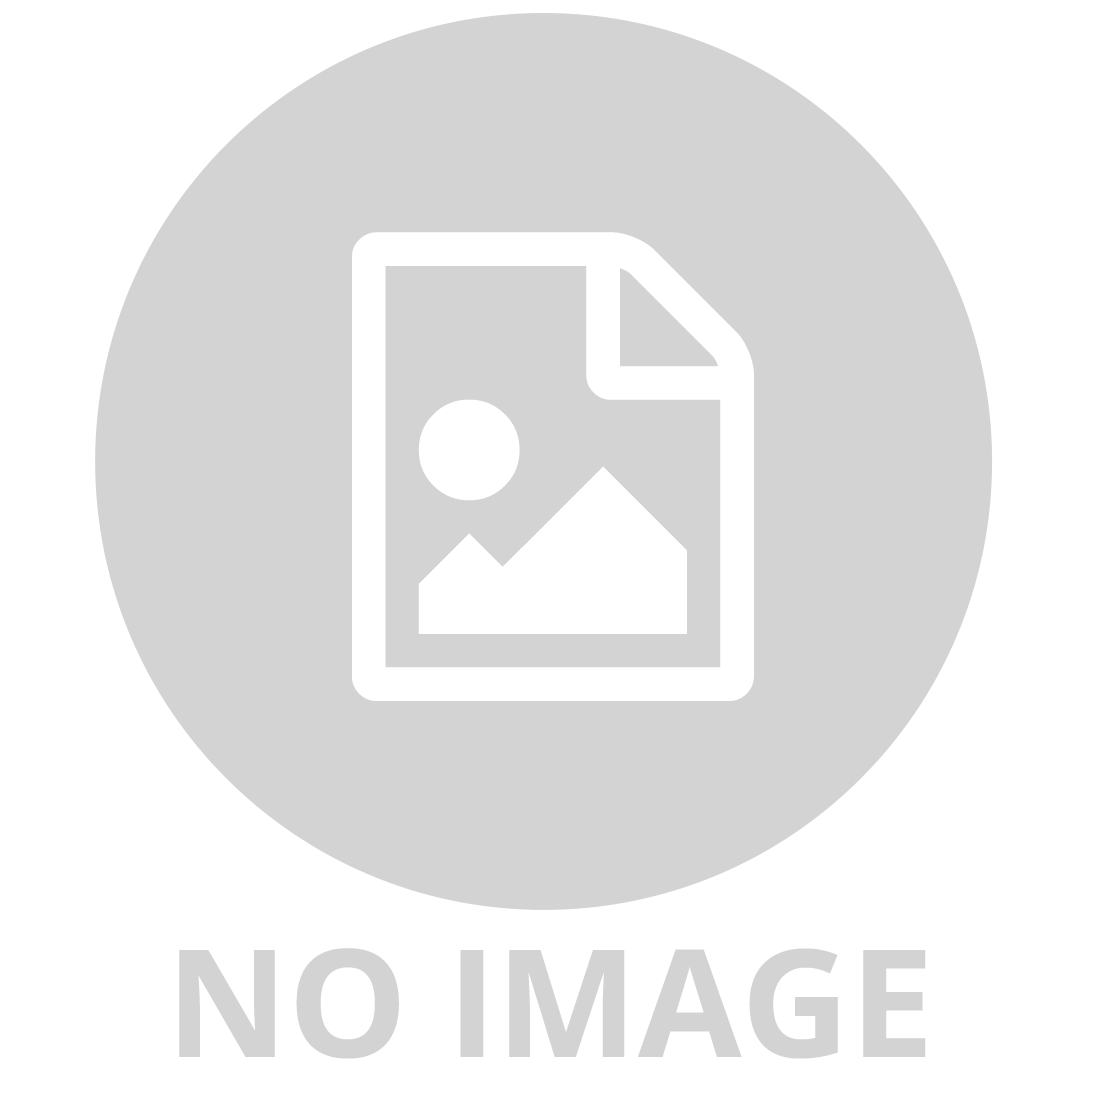 COLORIFIC FAIRYLIGHTS SECRET DIARY AND BRACELET